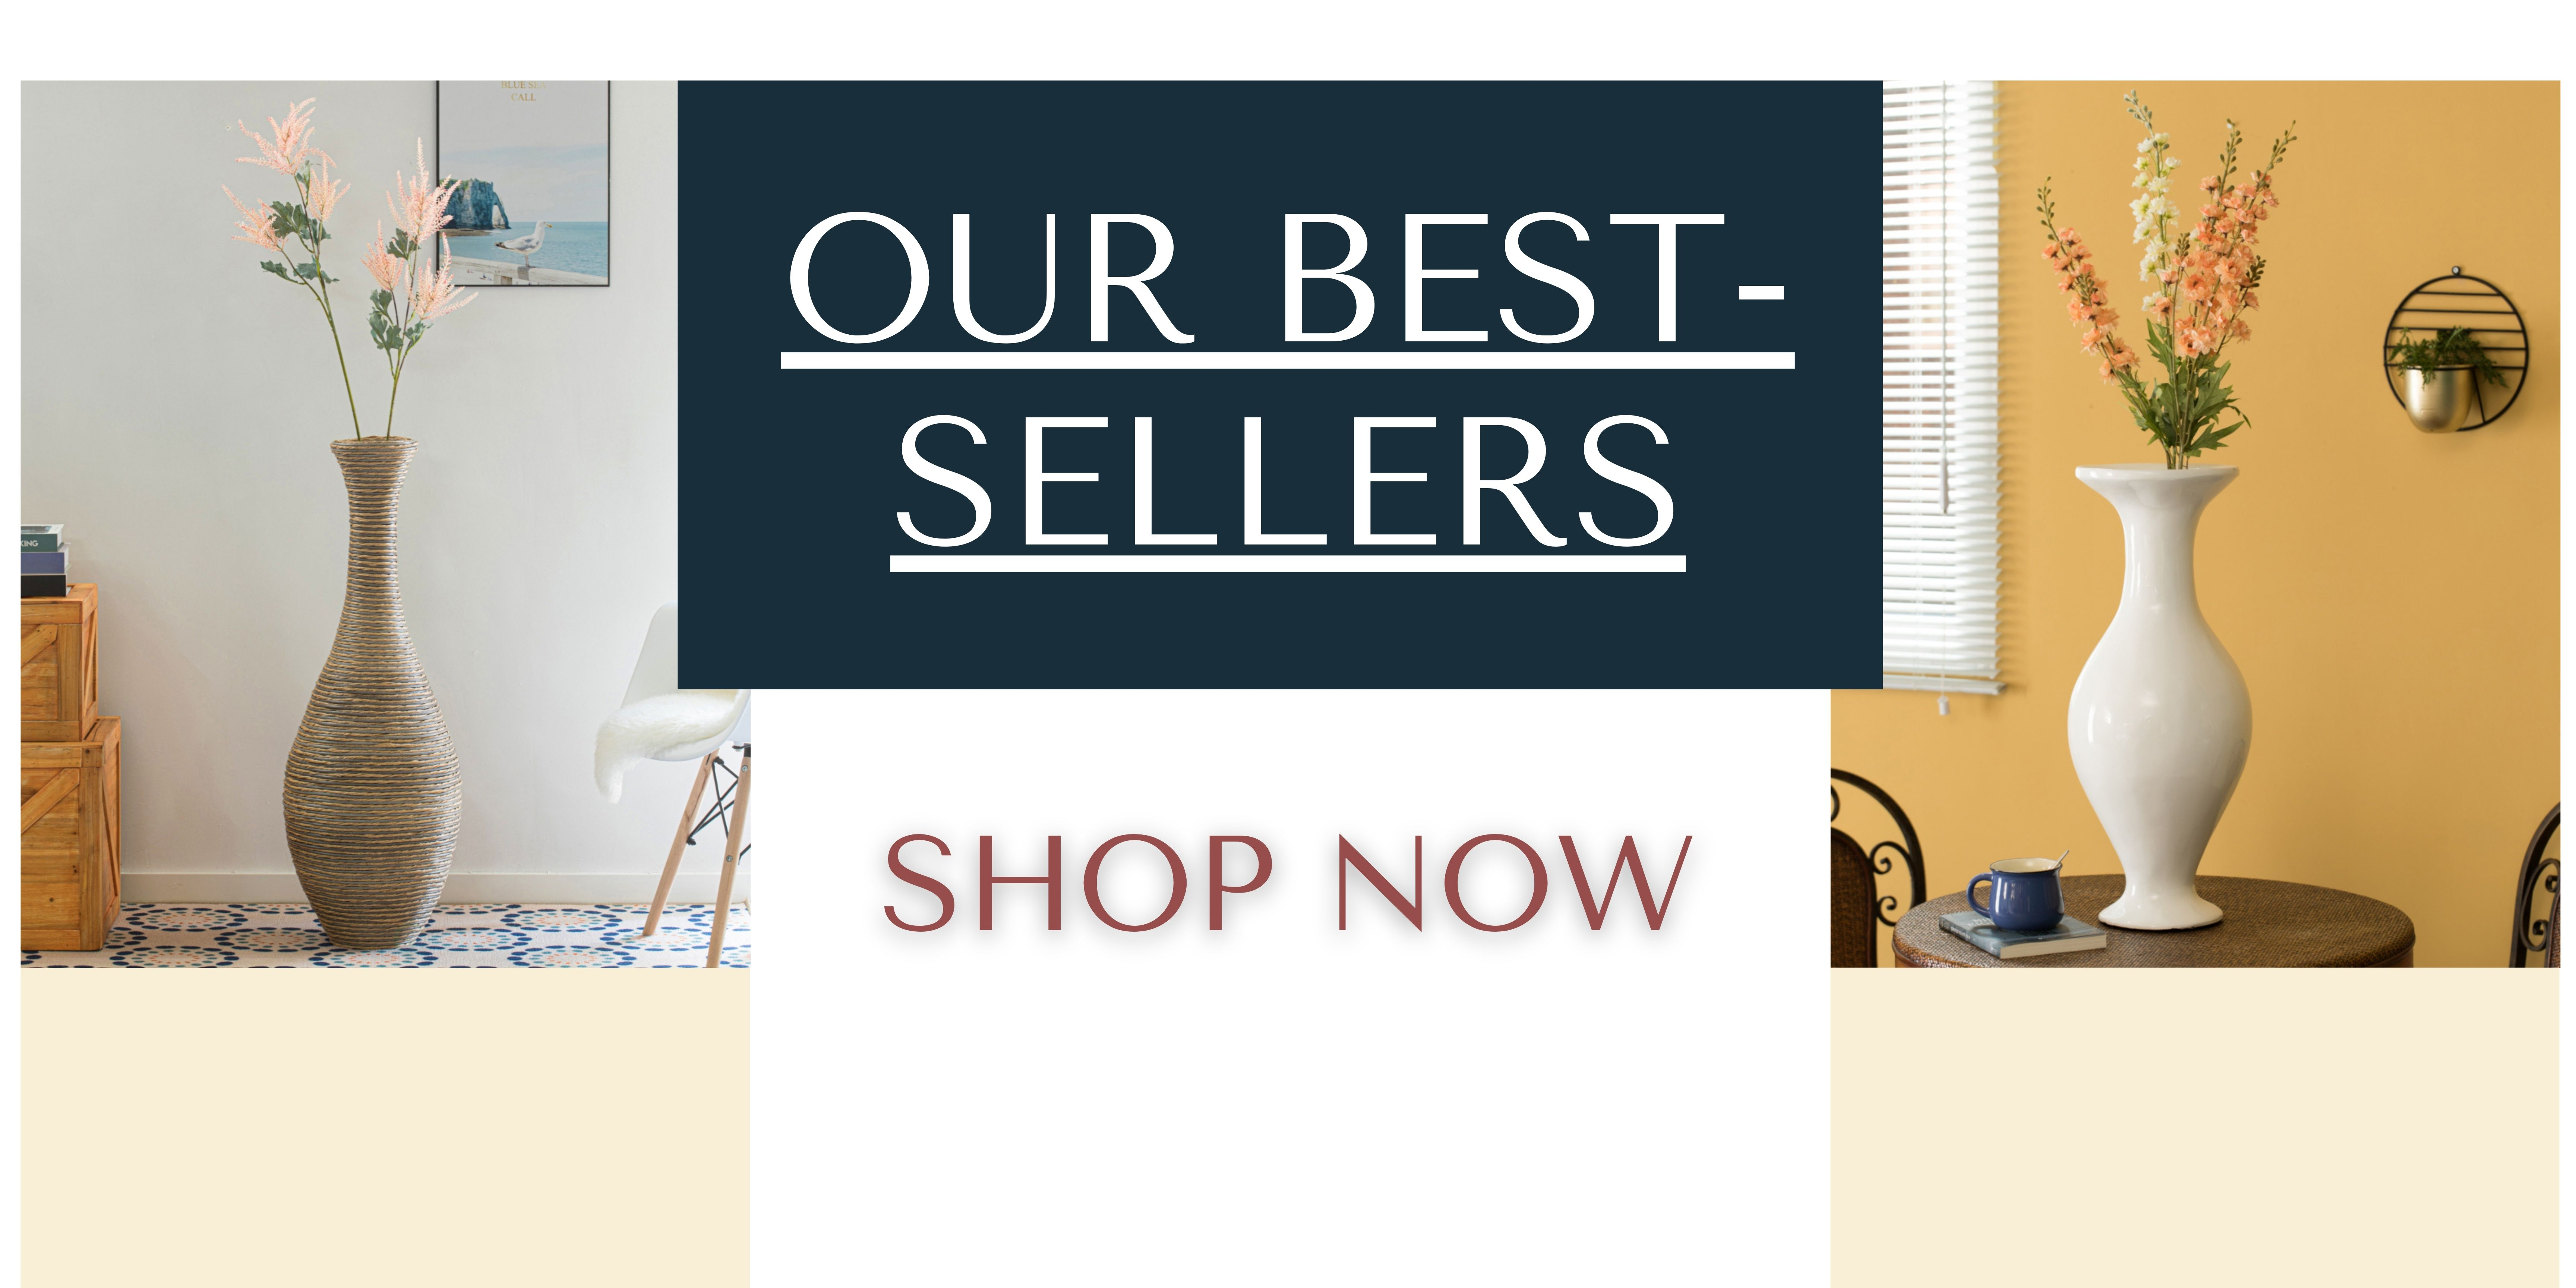 Bestsellers from Uniquewise Brand.